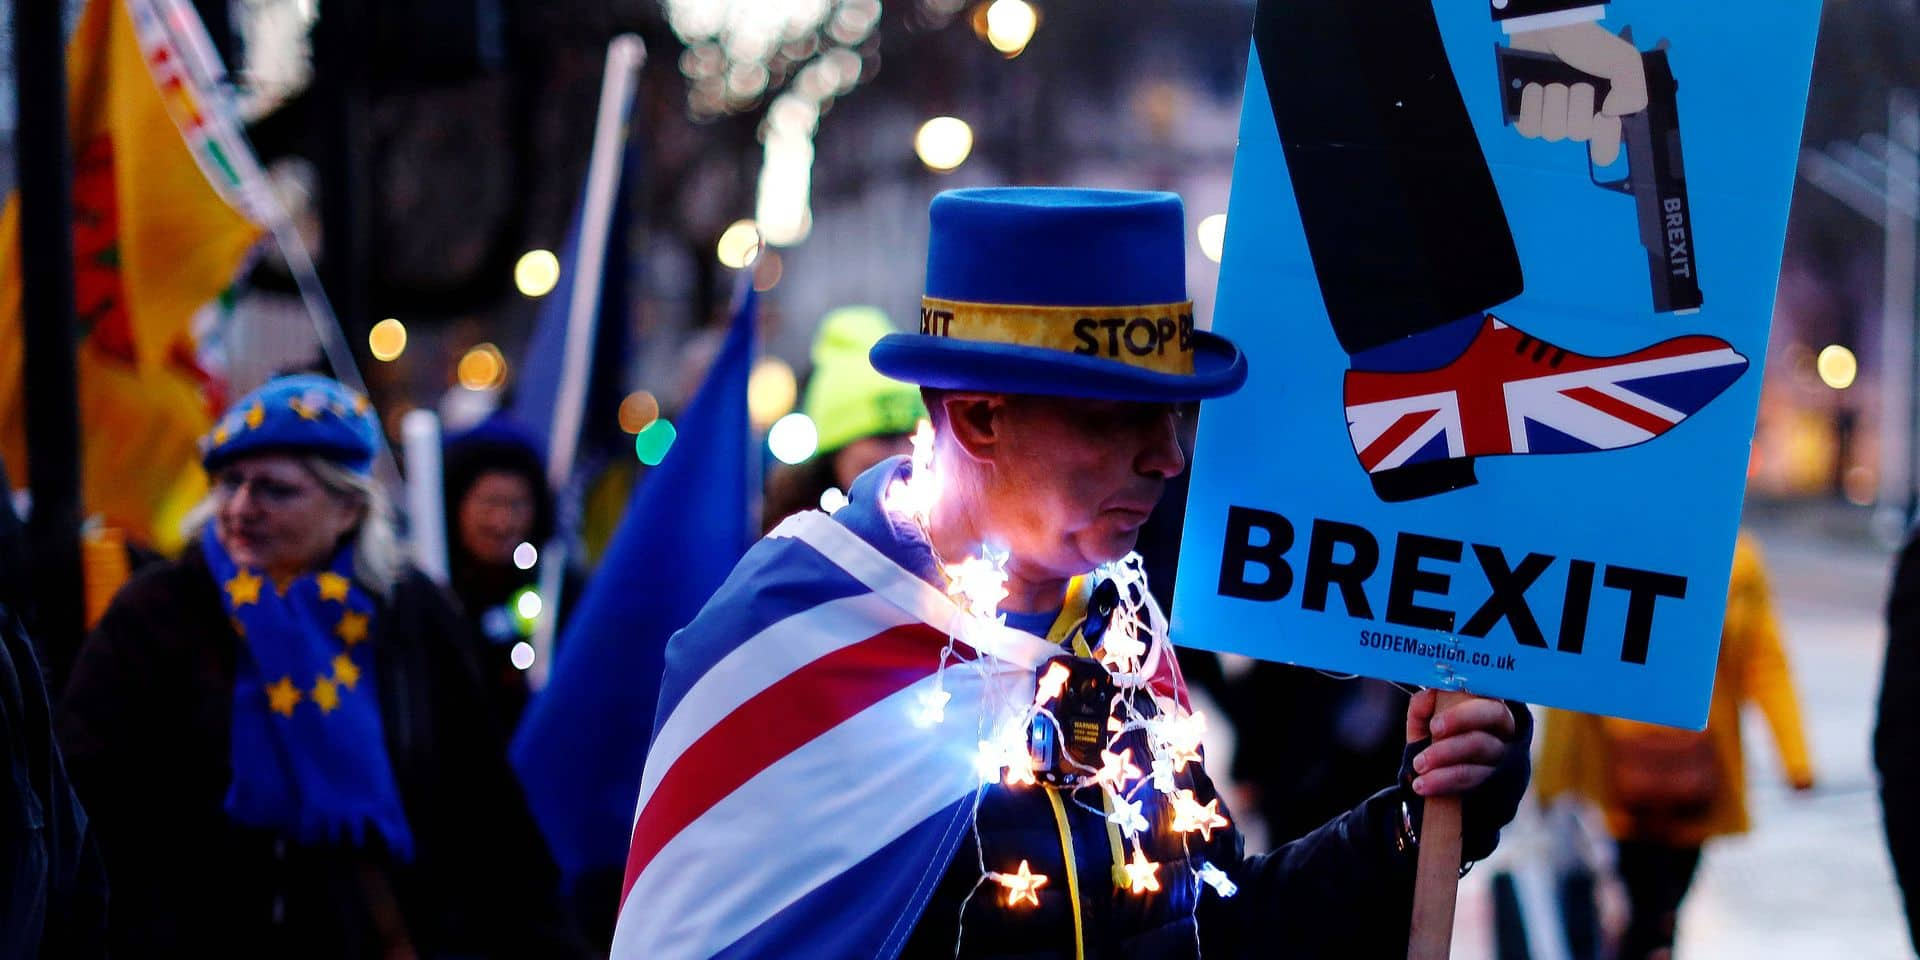 TOPSHOT - Anti-Brexit protestors stand outside the Houses of Parliament in London on March 12, 2019, ahead of the second meaningful vote on the government's Brexit deal. - Prime Minister Theresa May's Brexit deal faced a likely defeat in an historic parliamentary vote Tuesday that risked pitching Britain into the unknown just 17 days before its scheduled split from the European Union. (Photo by Tolga AKMEN / AFP)